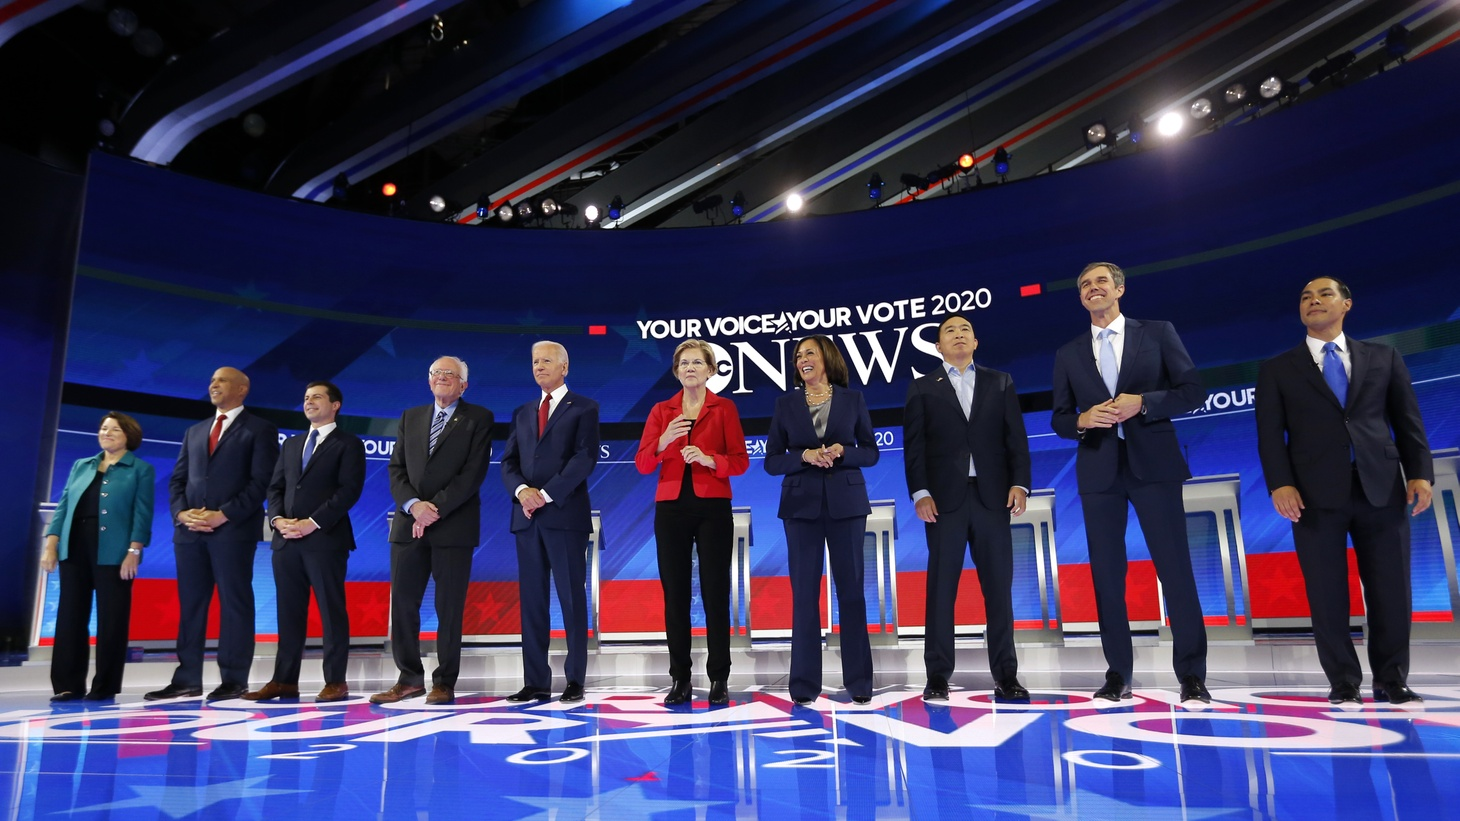 Democratic U.S. presidential candidates Senator Amy Klobuchar, Senator Cory Booker, South Bend Mayor Pete Buttigieg, Senator Bernie Sanders, former Vice President Joe Biden, Senator Elizabeth Warren, Senator Kamala Harris, entrepreneur Andrew Yang, former Rep. Beto O'Rourke and former Housing Secretary Julian Castro pose before the start at the 2020 Democratic U.S. presidential debate in Houston, Texas, September 12, 2019.